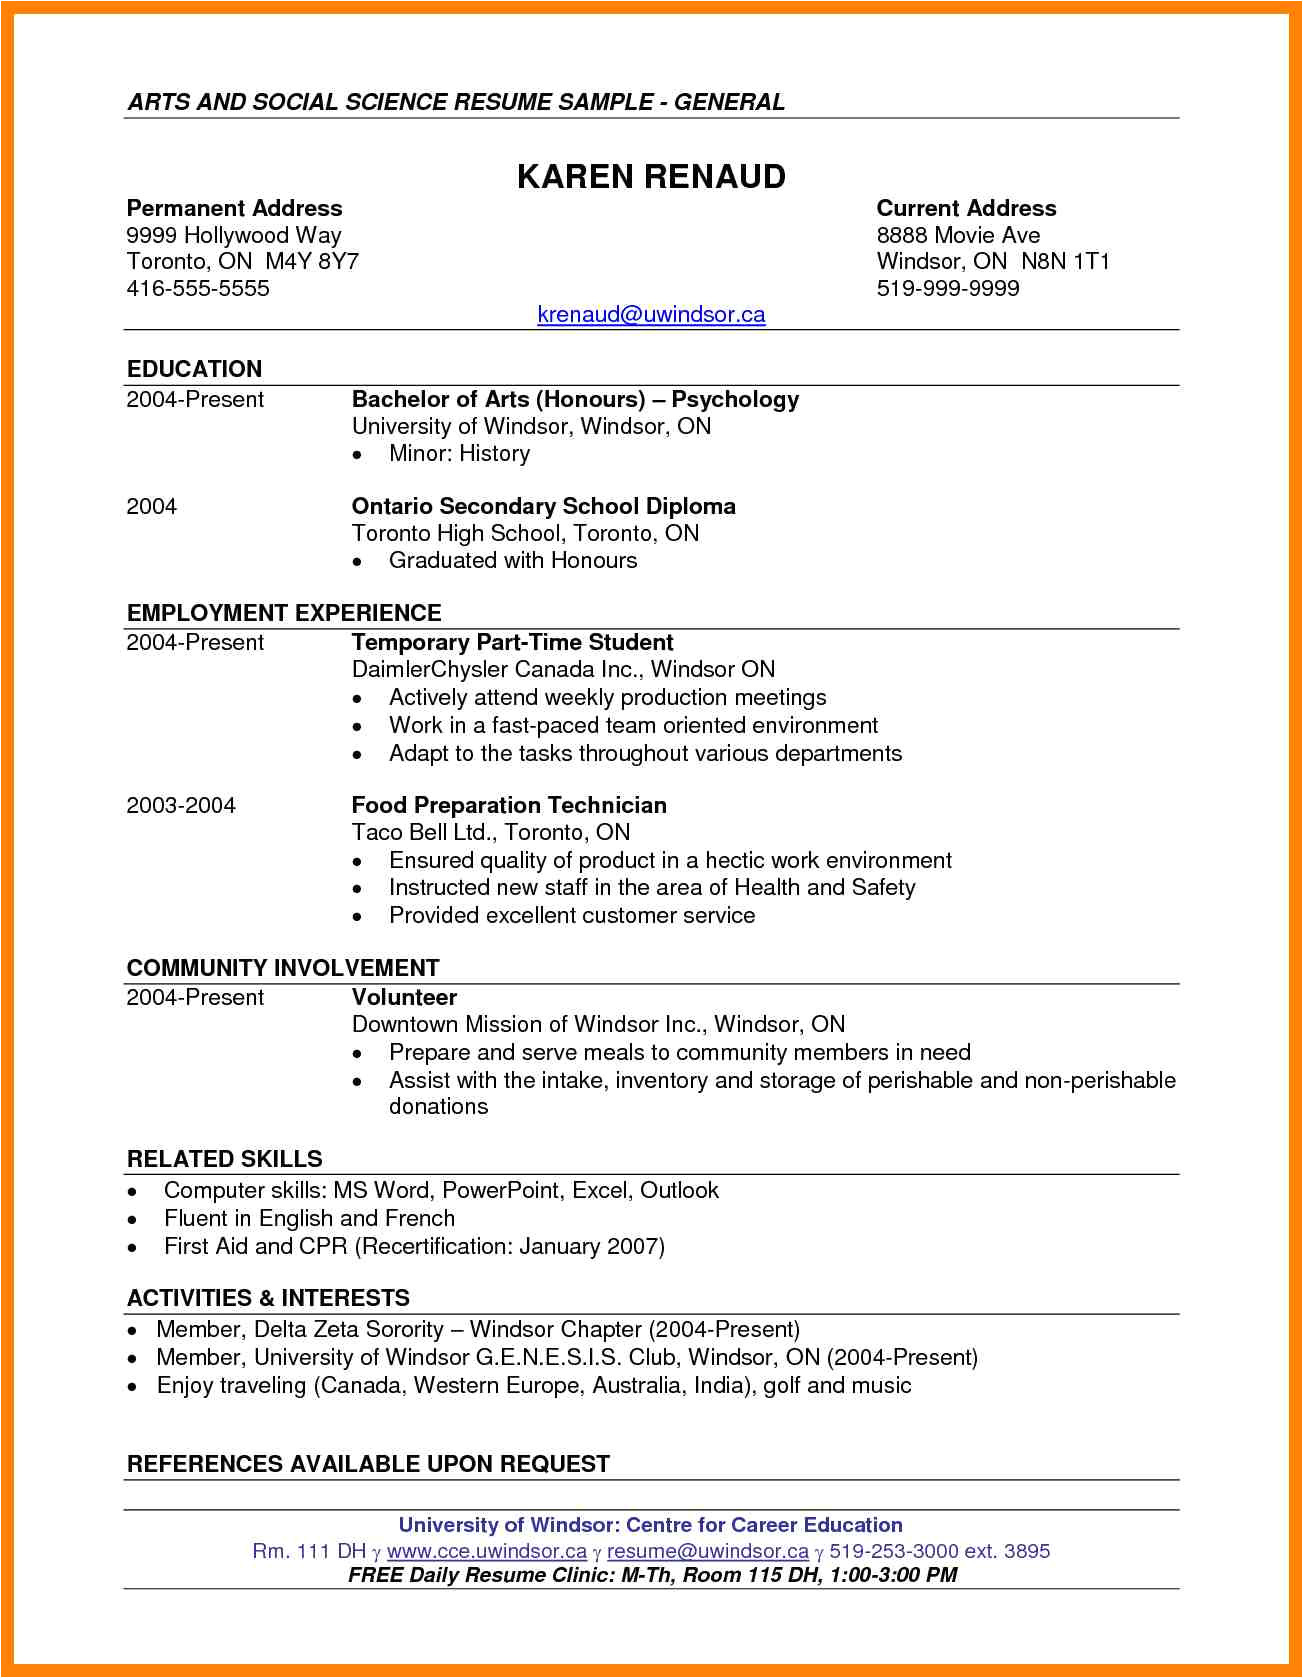 taco bell resume sample